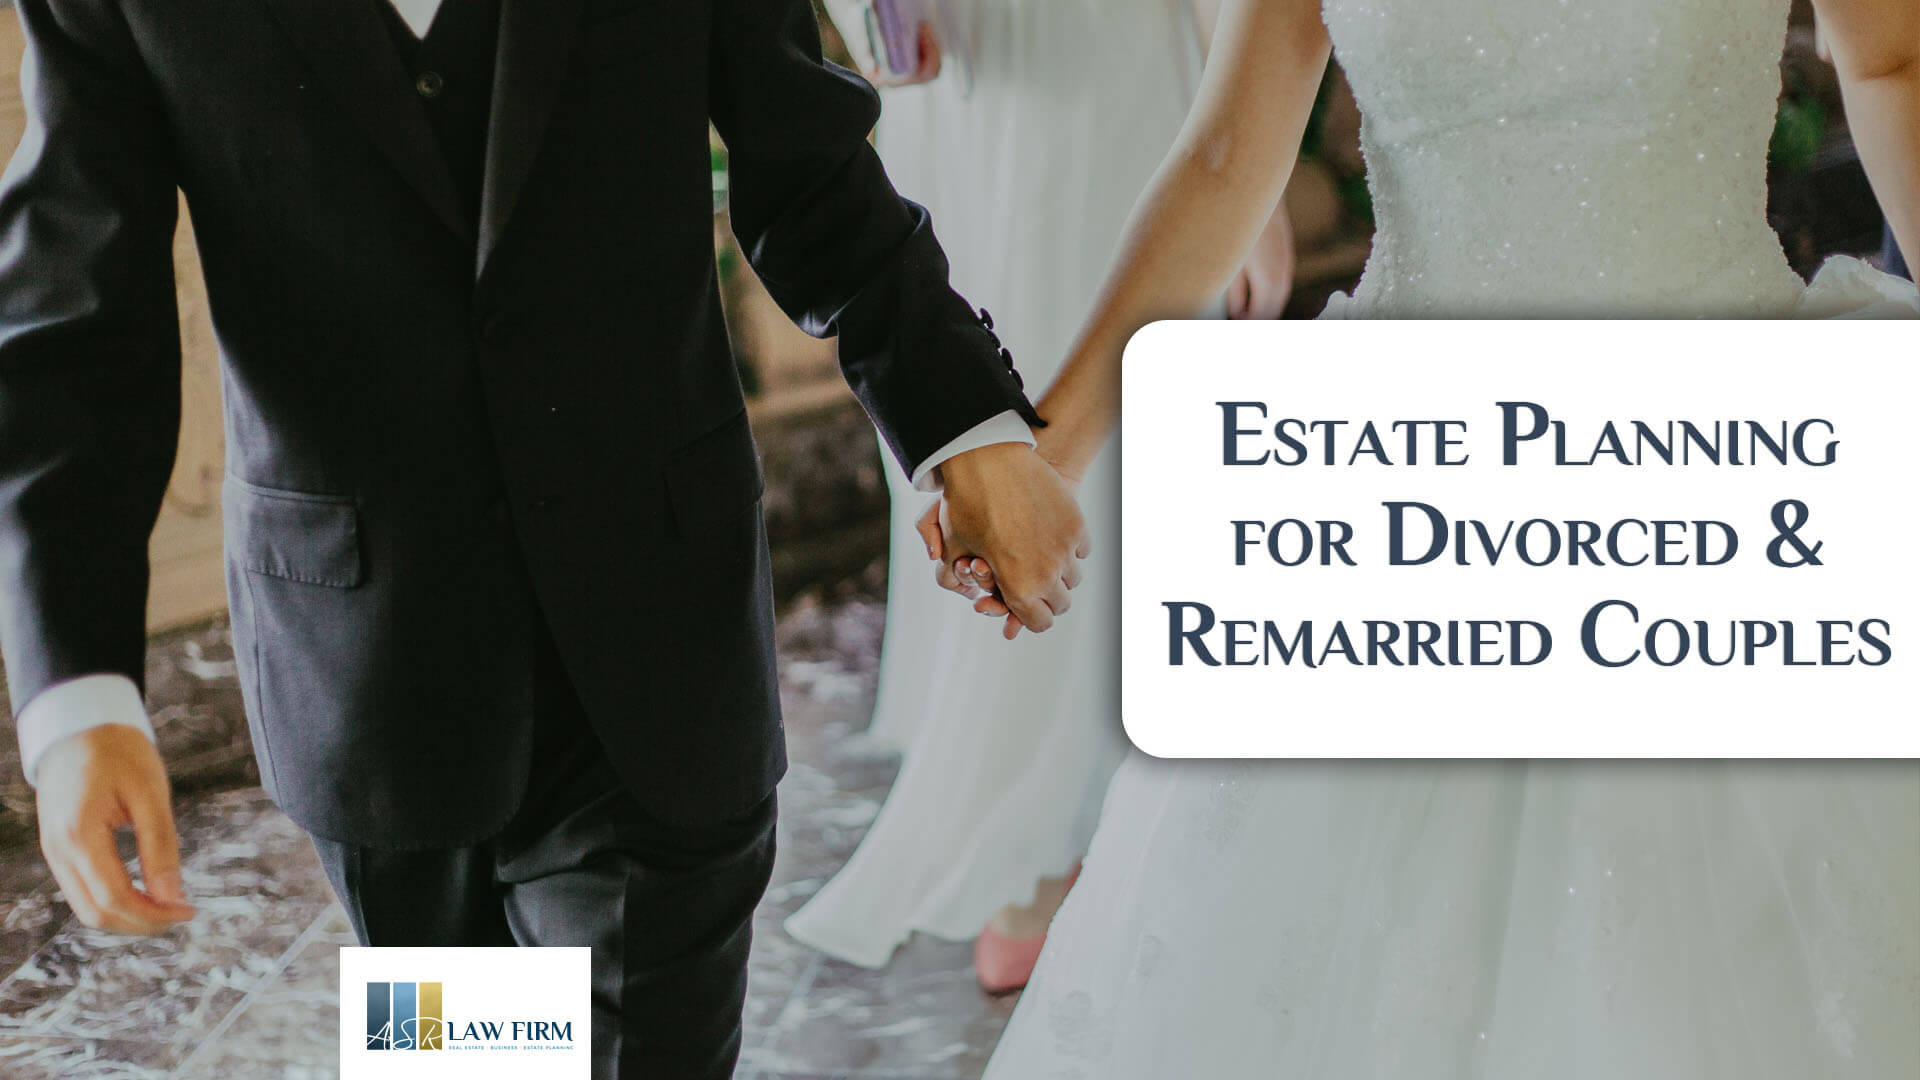 An image of a screenshot of the Estate Planning for divorced and remarried  webinar by ASR Law Firm.